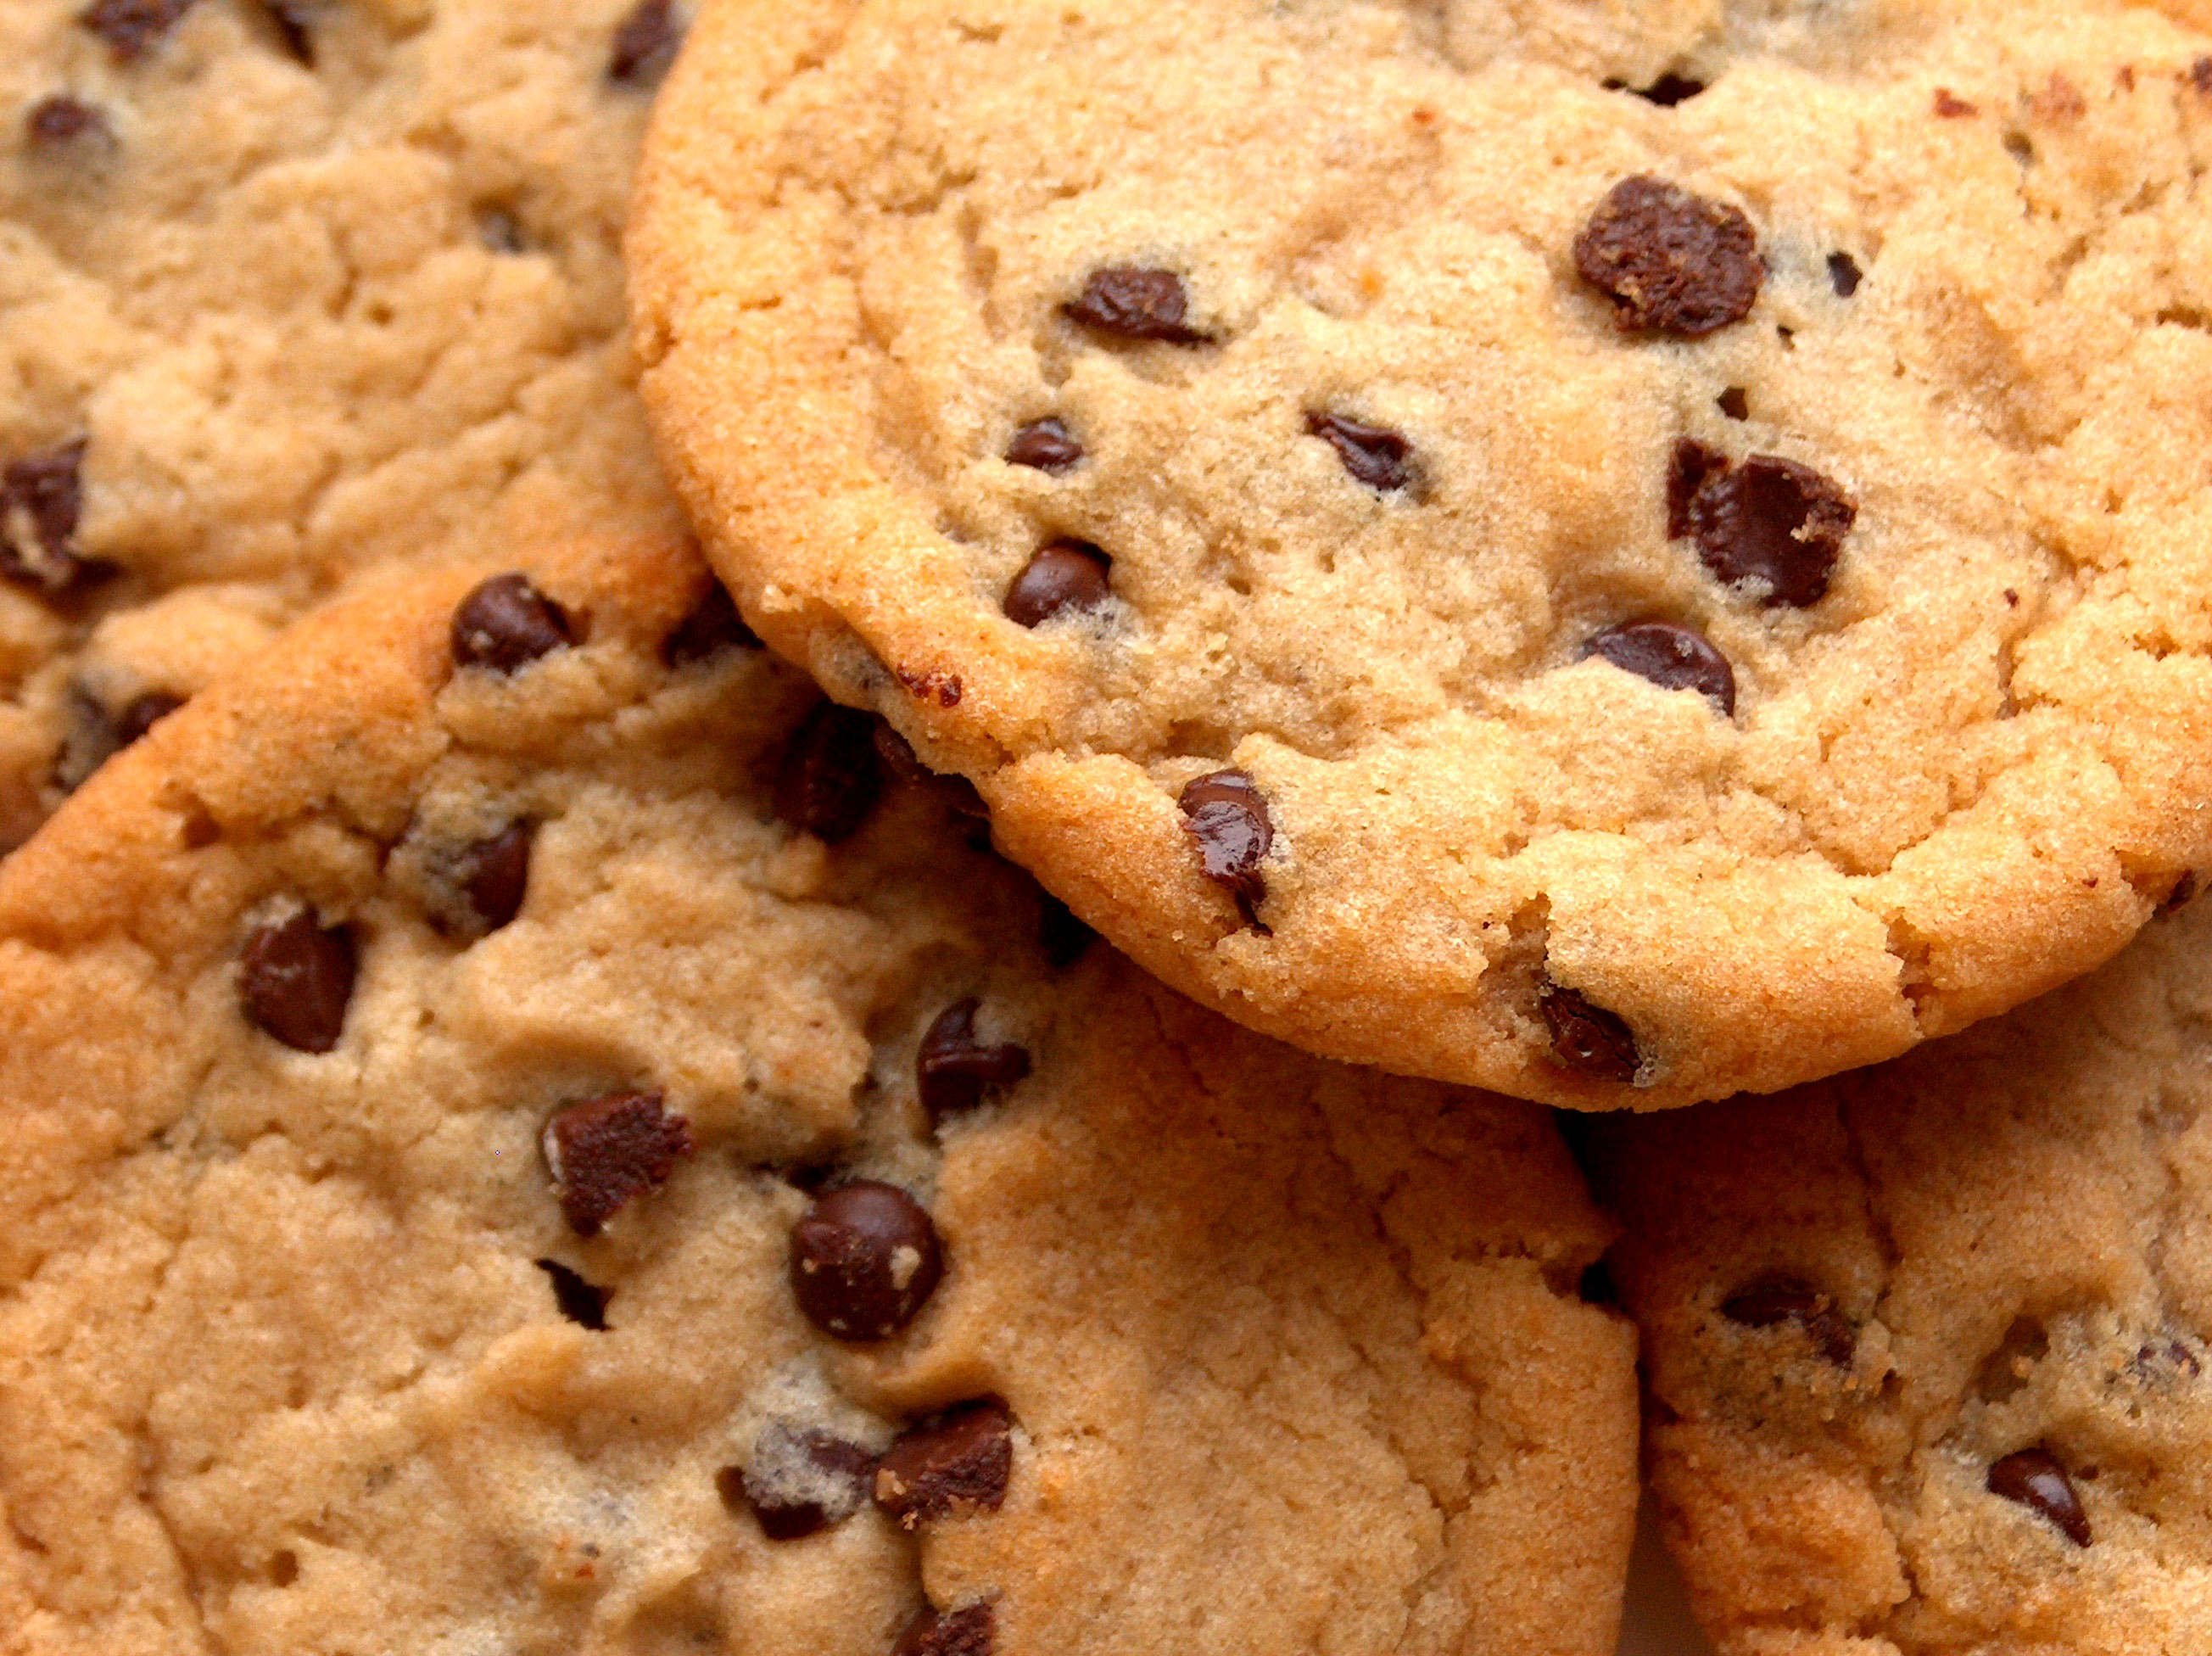 Chocolate Chip Cookie Recipe: Egg Free and Dairy Free